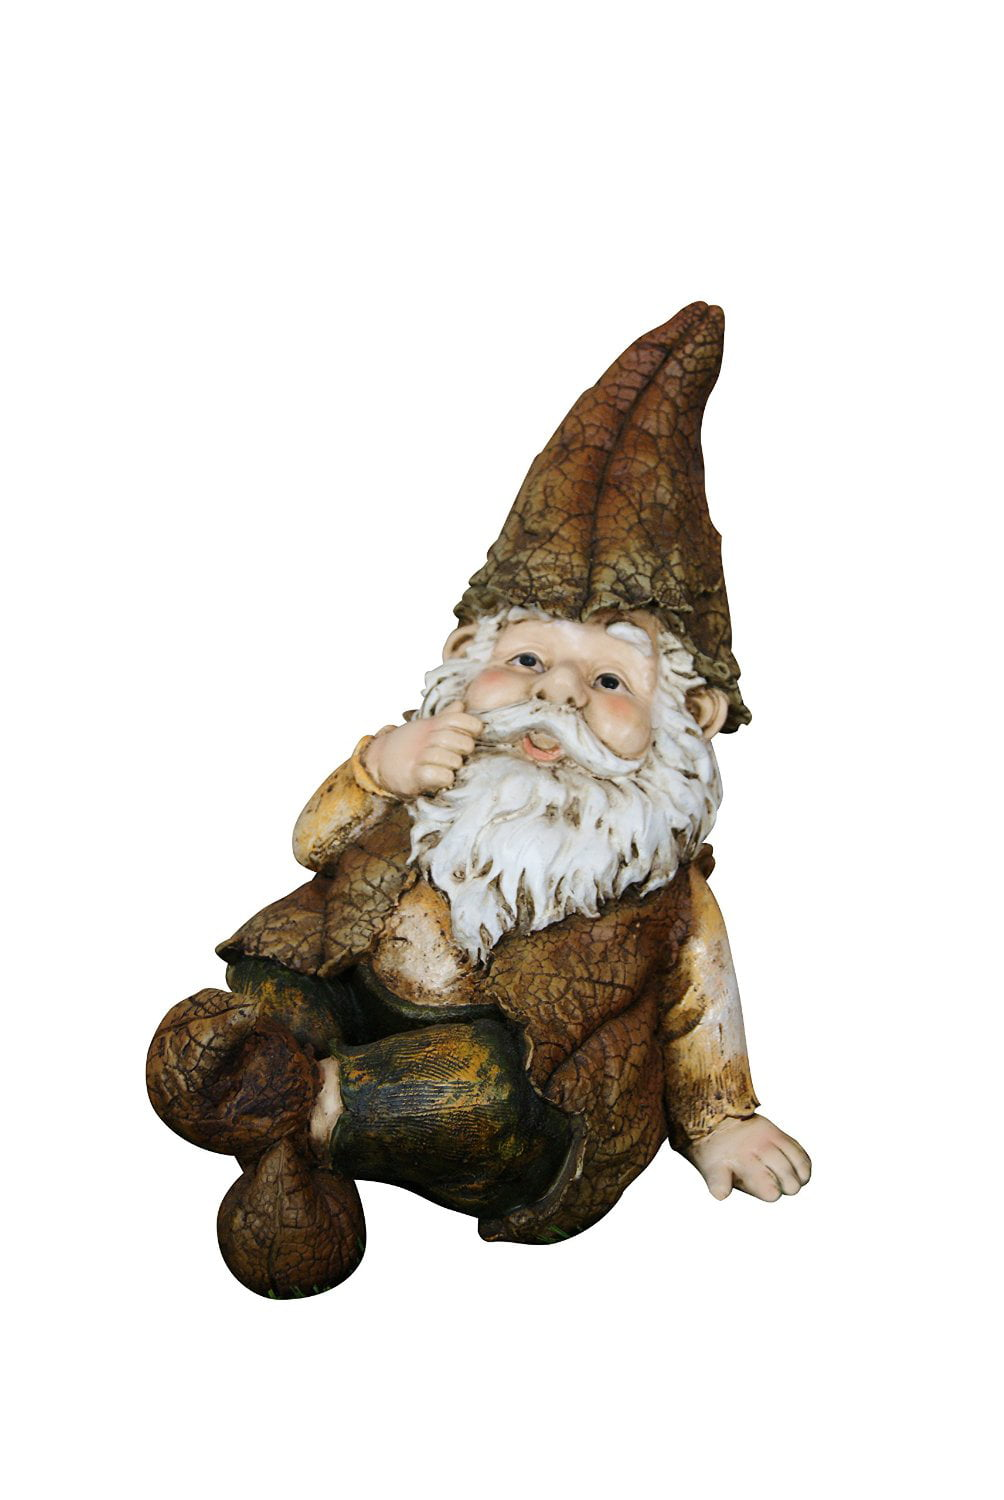 9 Inch Rainforest Sitting Gnome Garden Statue by Garden Gnomes